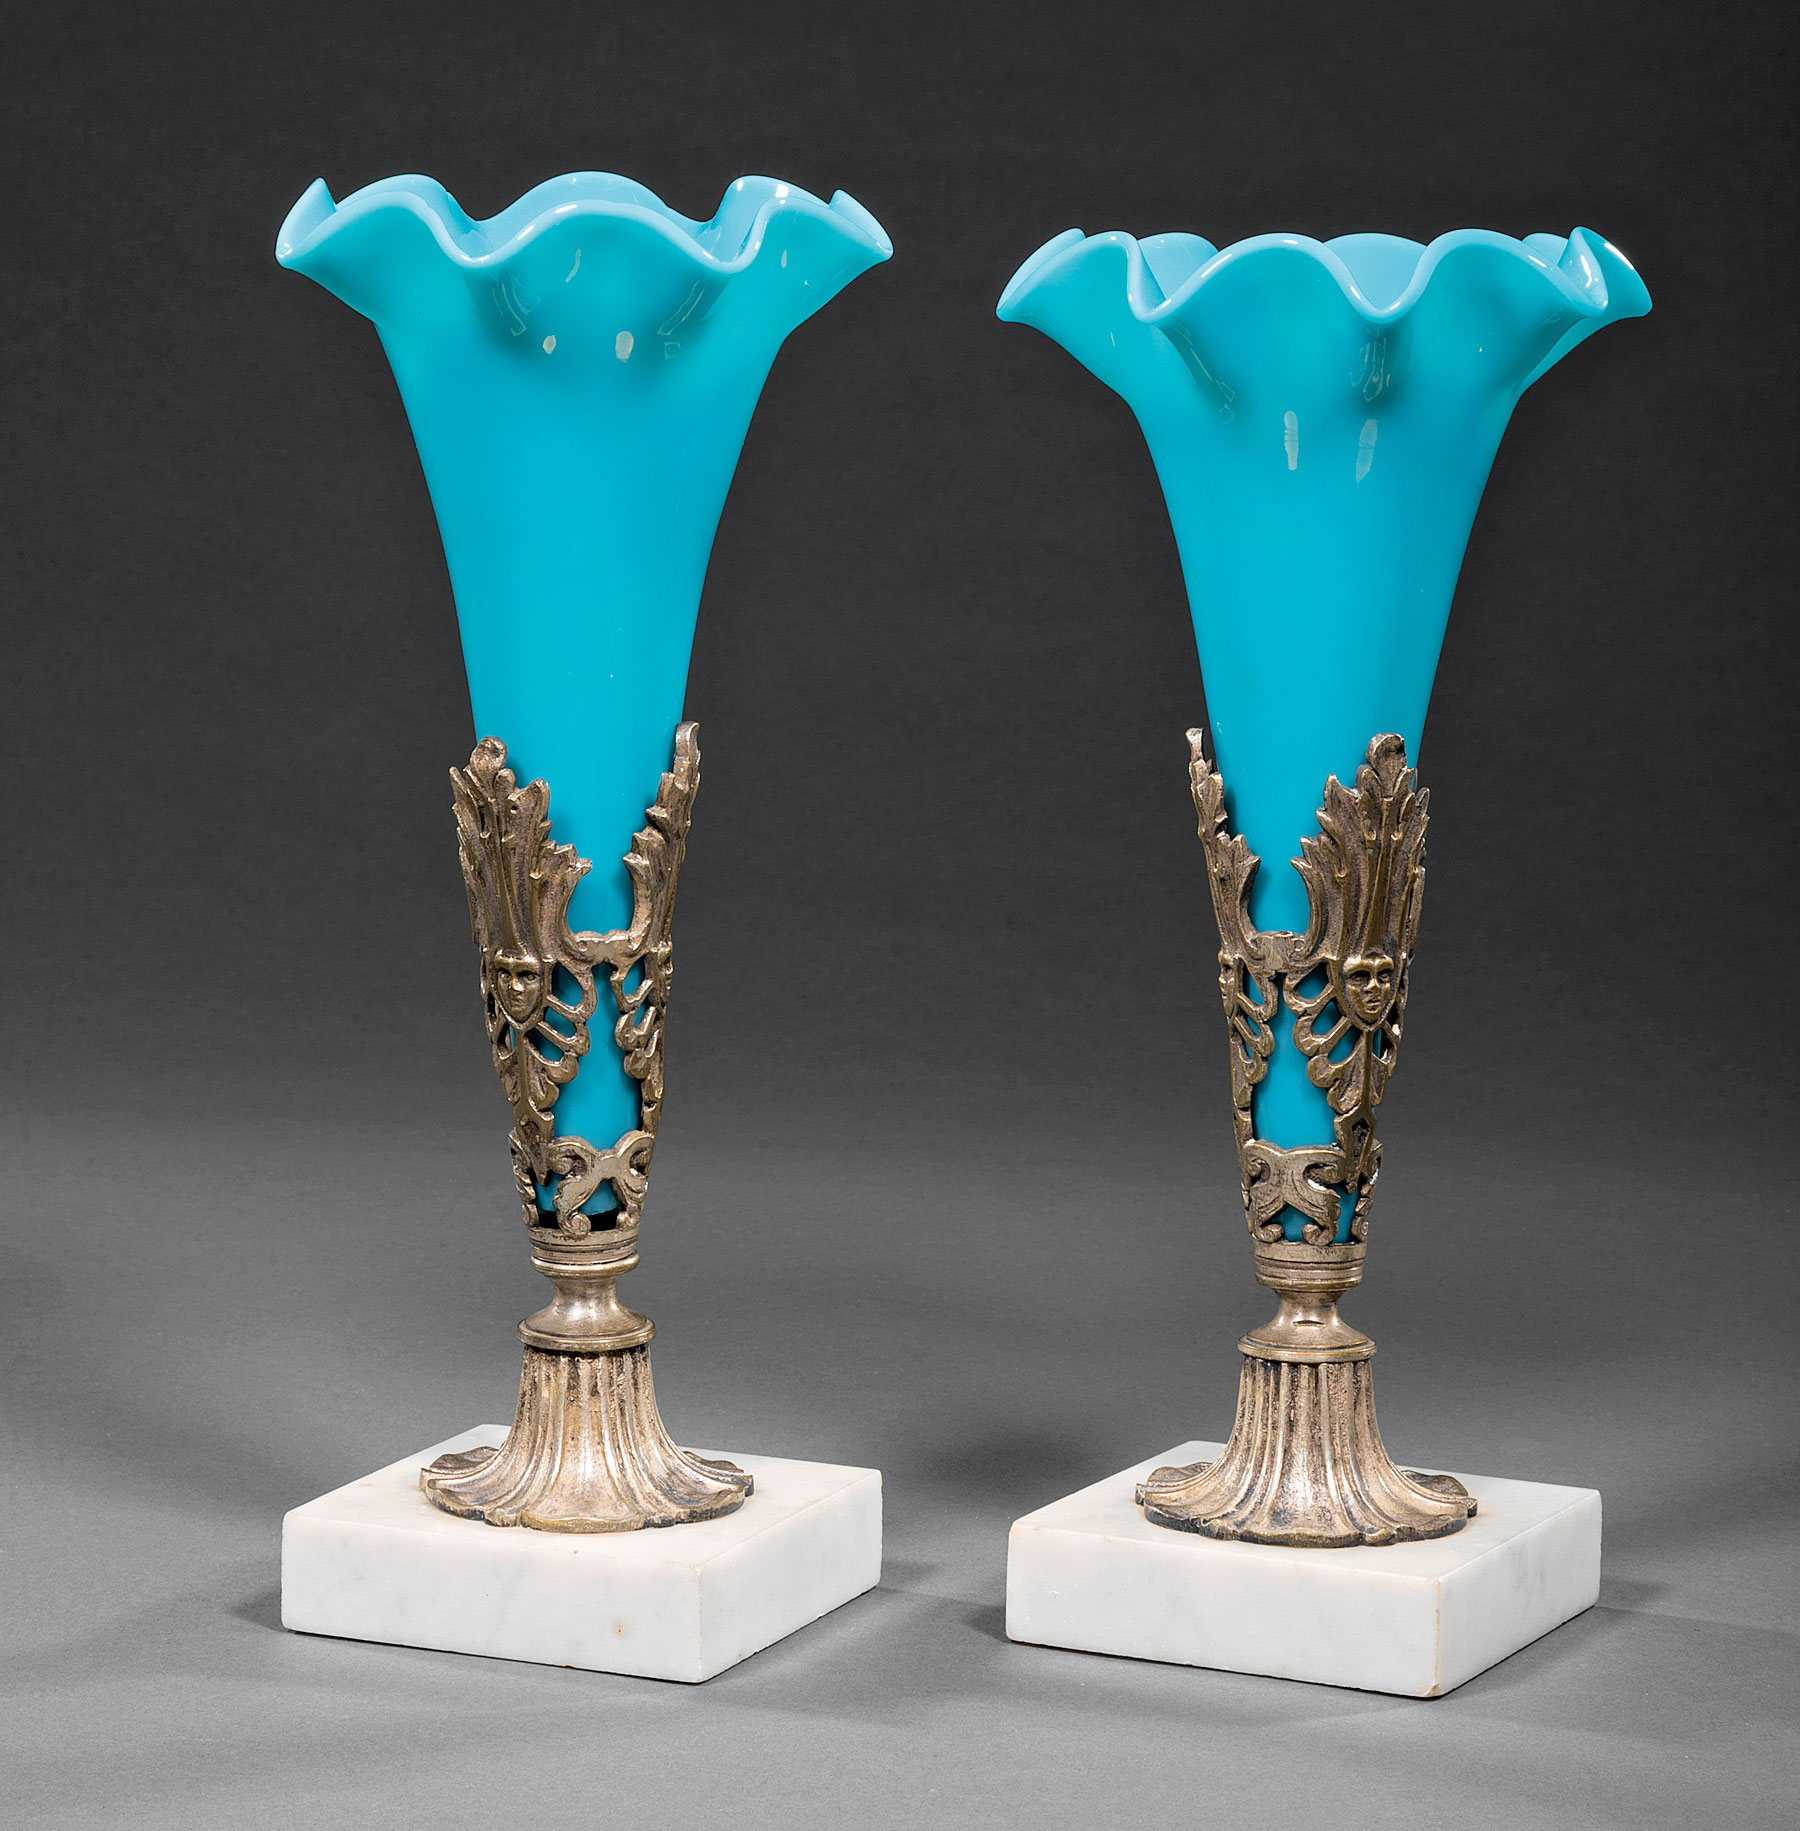 Lot 653 - Pair of Victorian Silvered Metal, Marble and Blue Opaline Glass Trumpet Vases , mid-19th c., h. 11